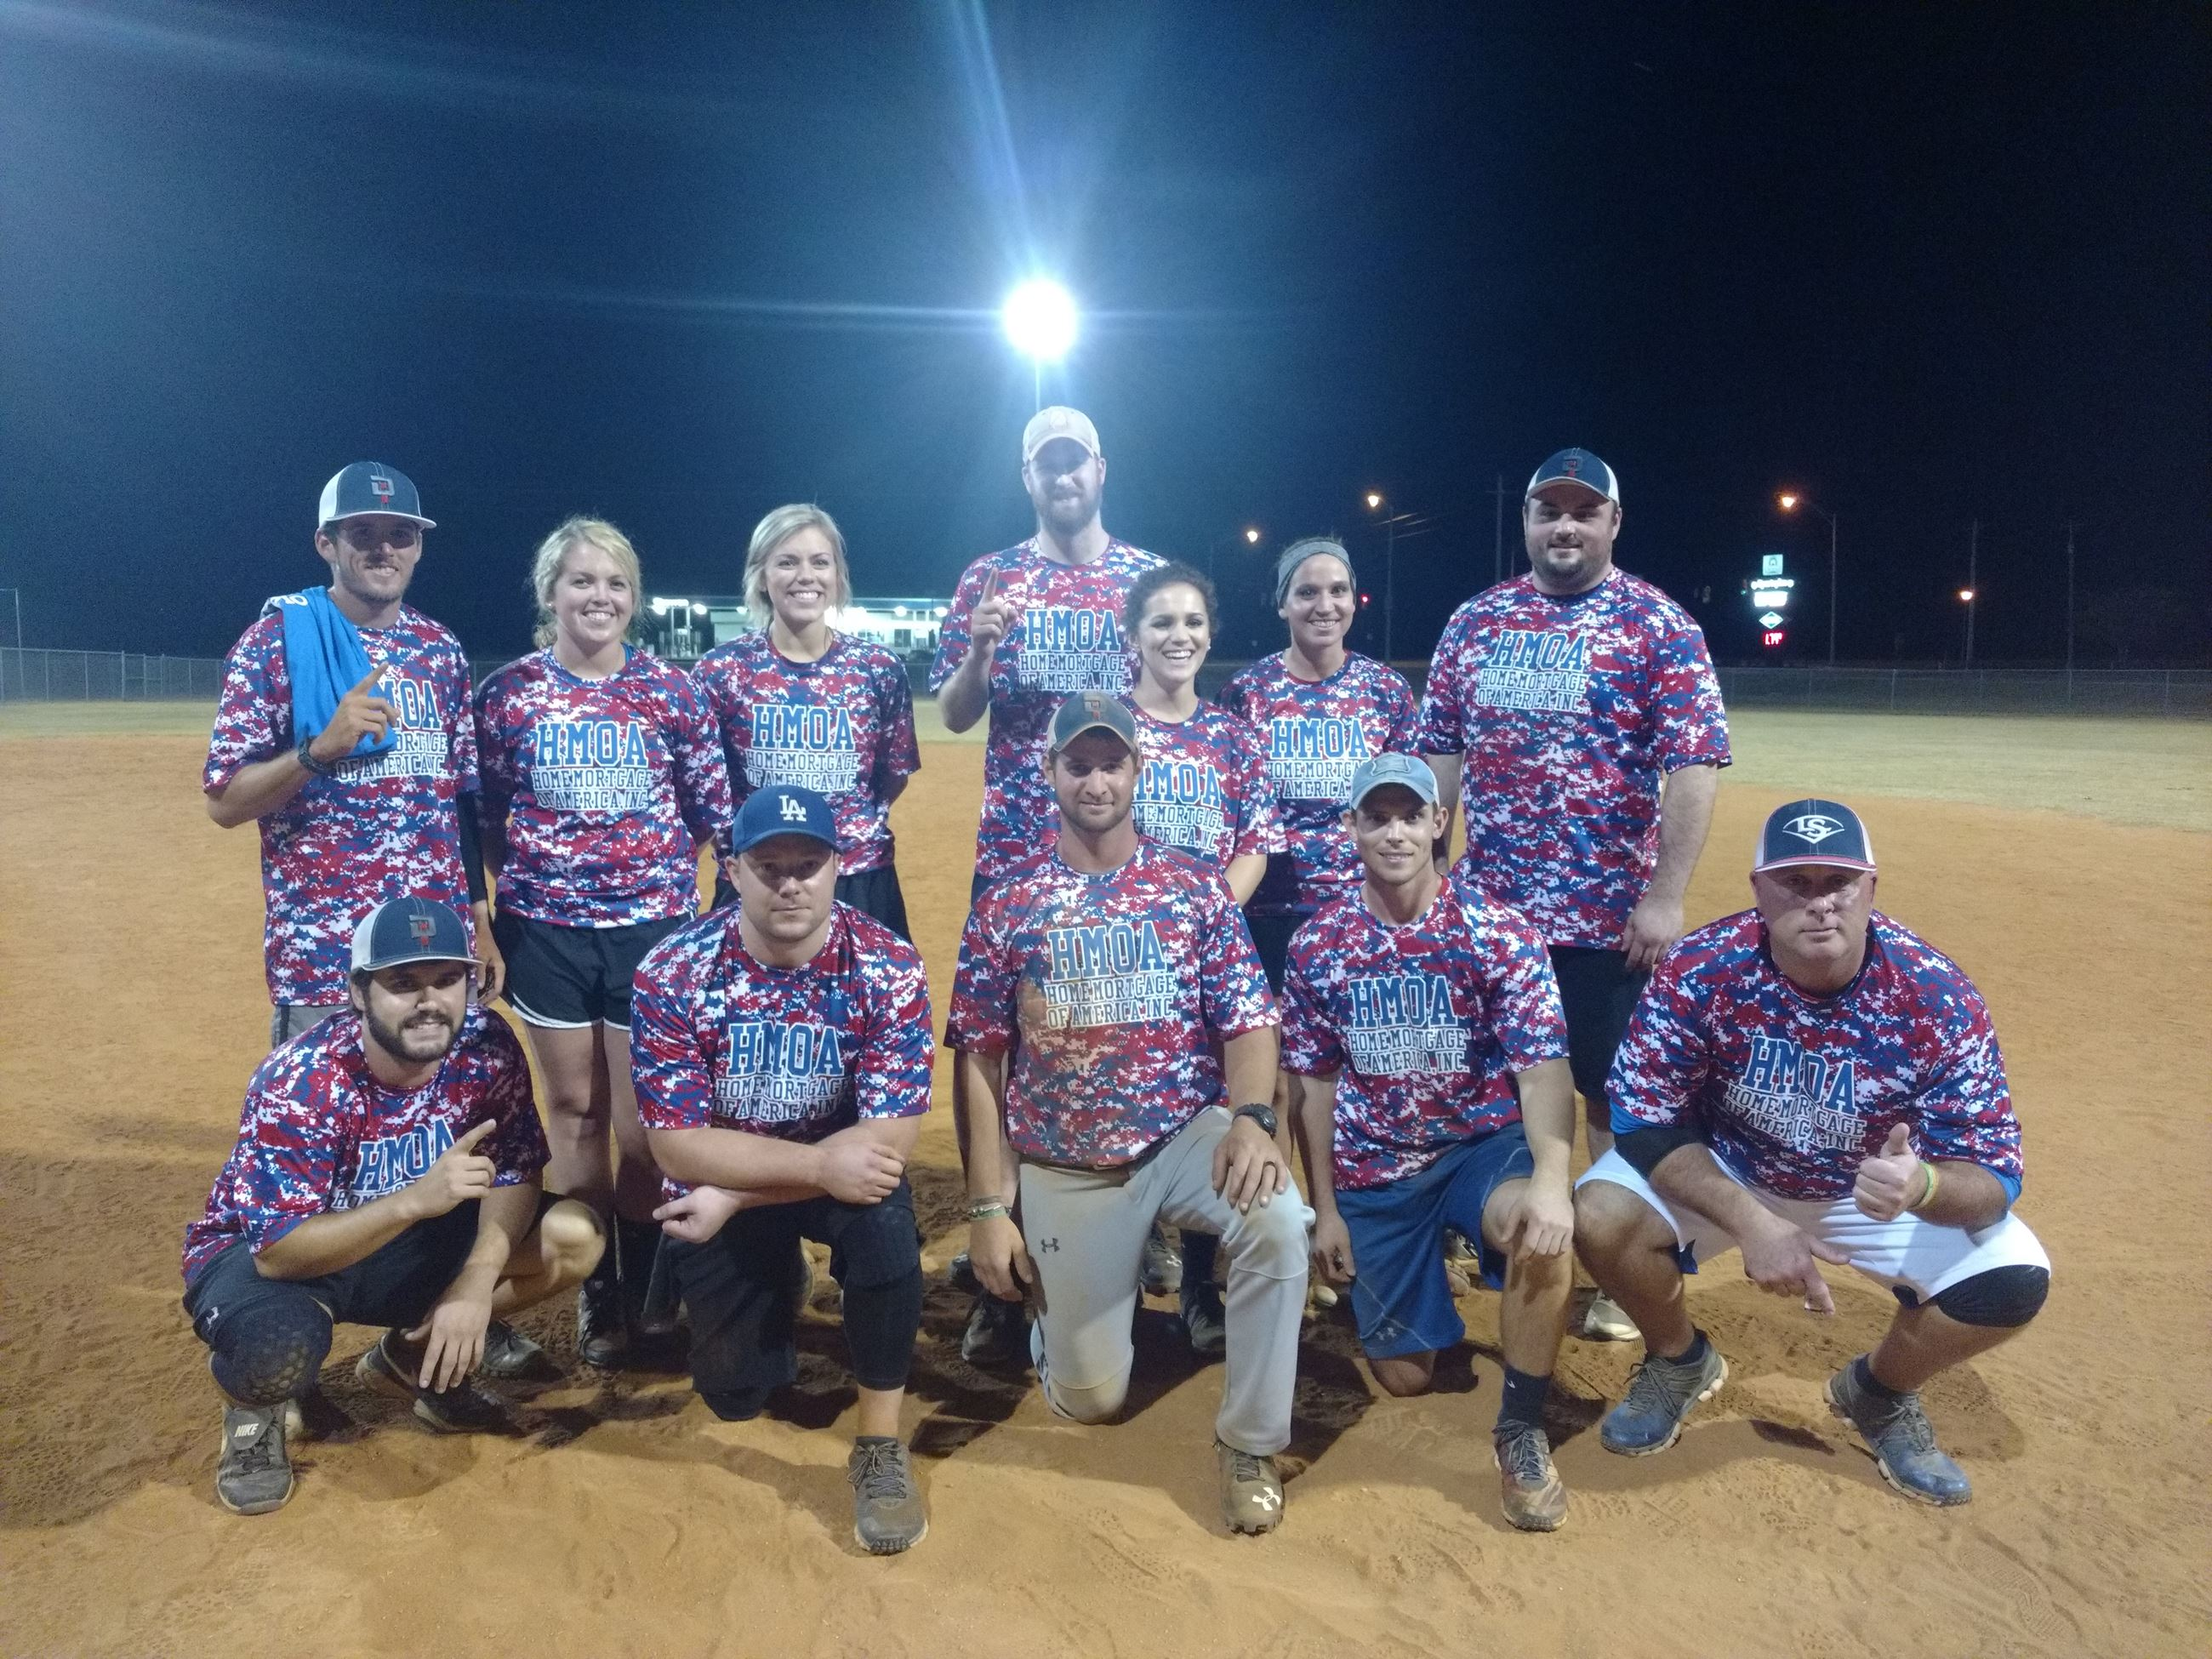 Home Mortgage of America - 1st Place Season and Tournament